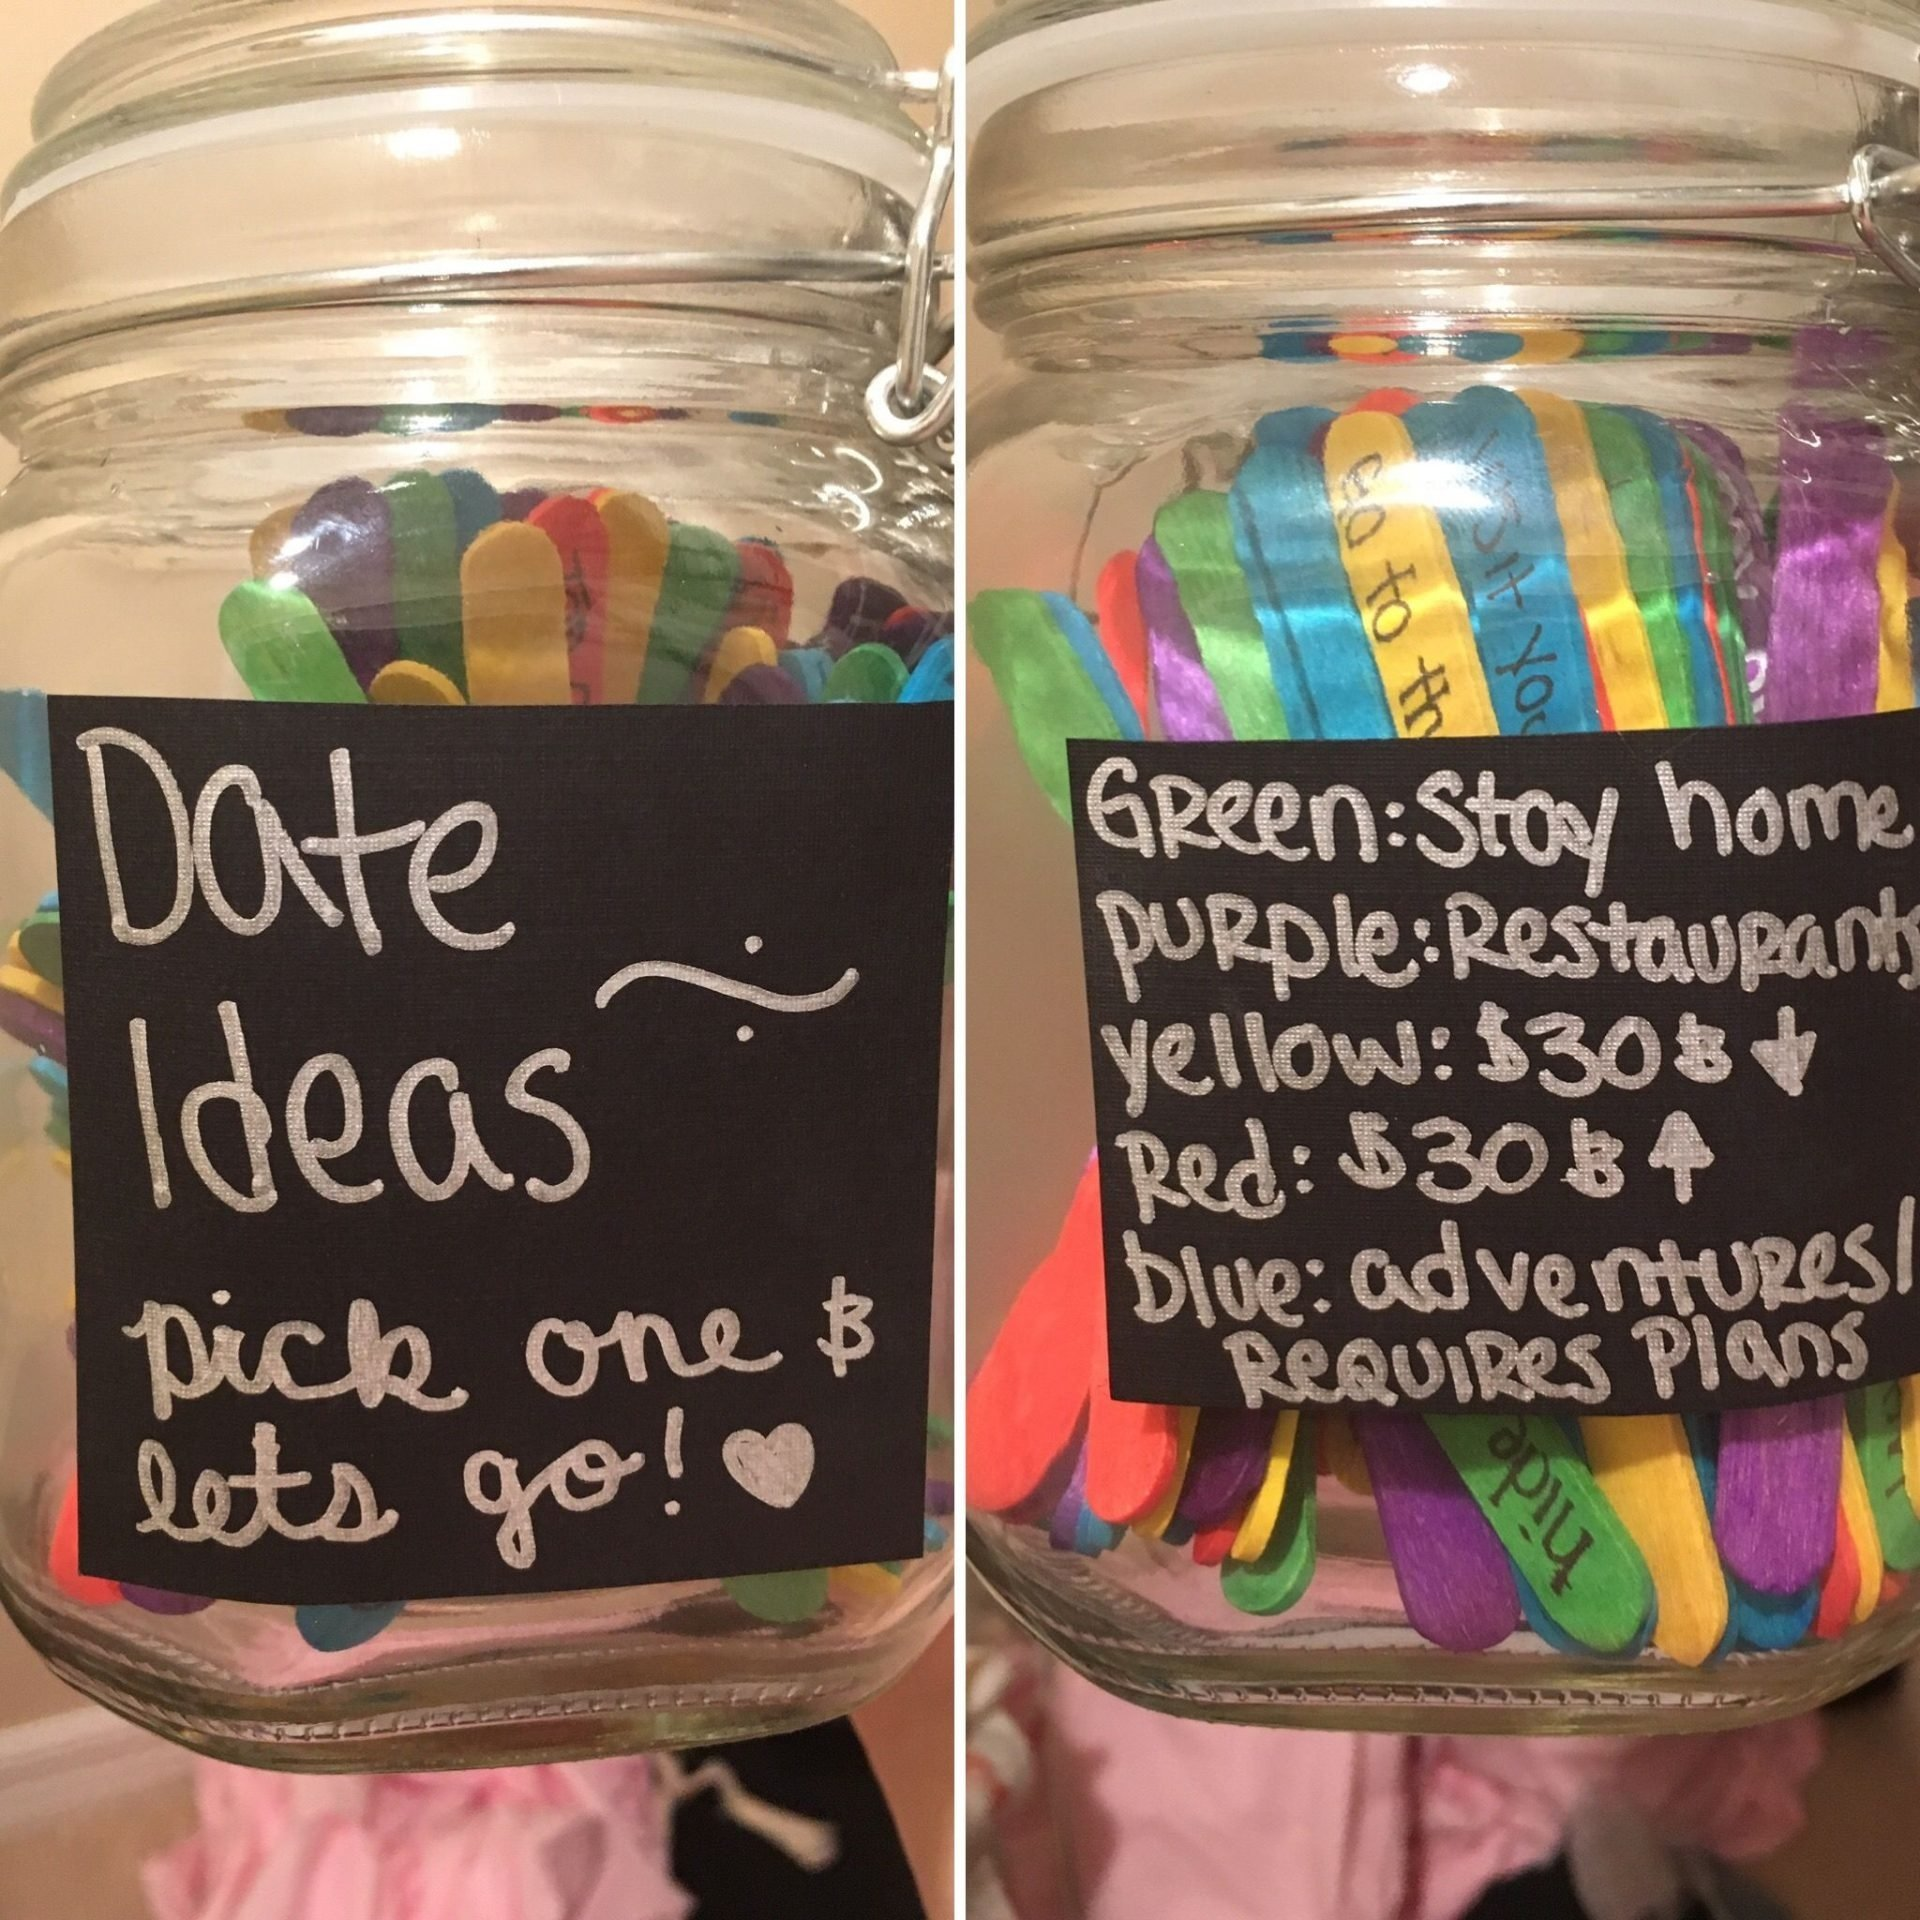 10 Fantastic Date Ideas In Kansas City mason jars jar restaurant best desserts in images on pinterest 2020